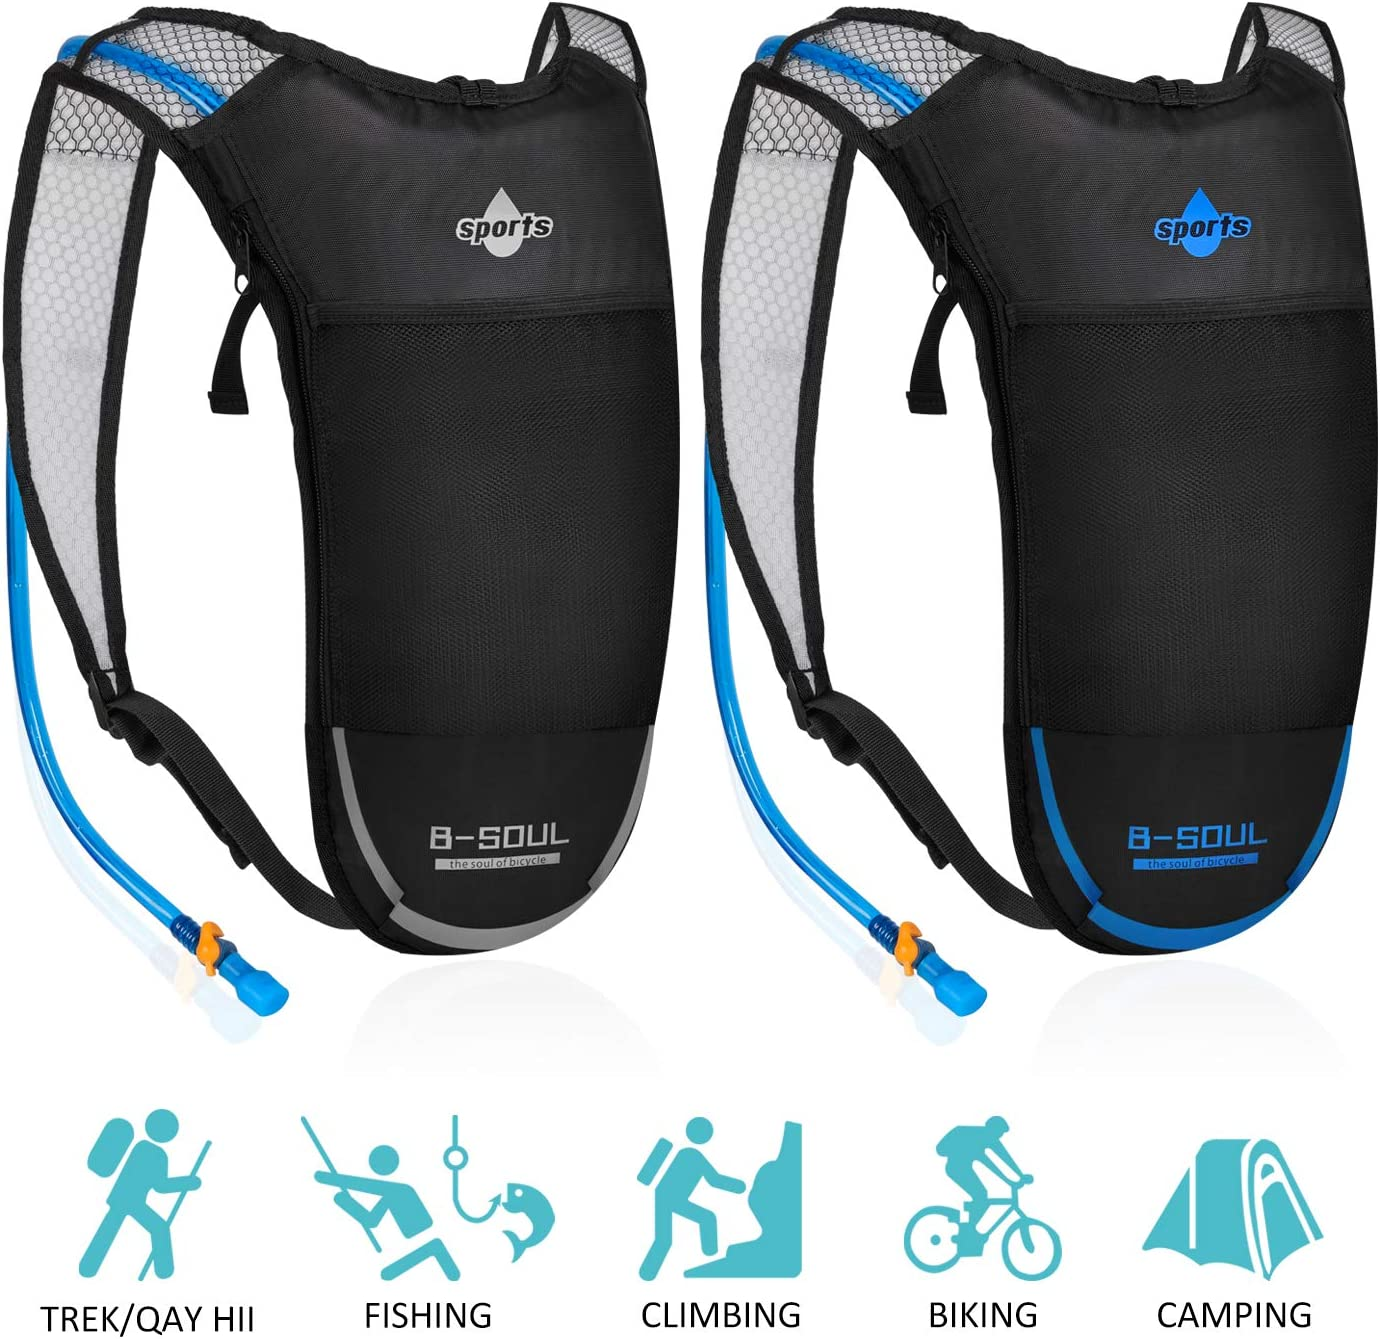 ACVCY 2 Pack Hydration Backpack,Lightweight Water Backpack with 2L Water Bladder and Adjustable Straps Daypack Perfect for Running, Hiking, Biking, Festivals, Raves